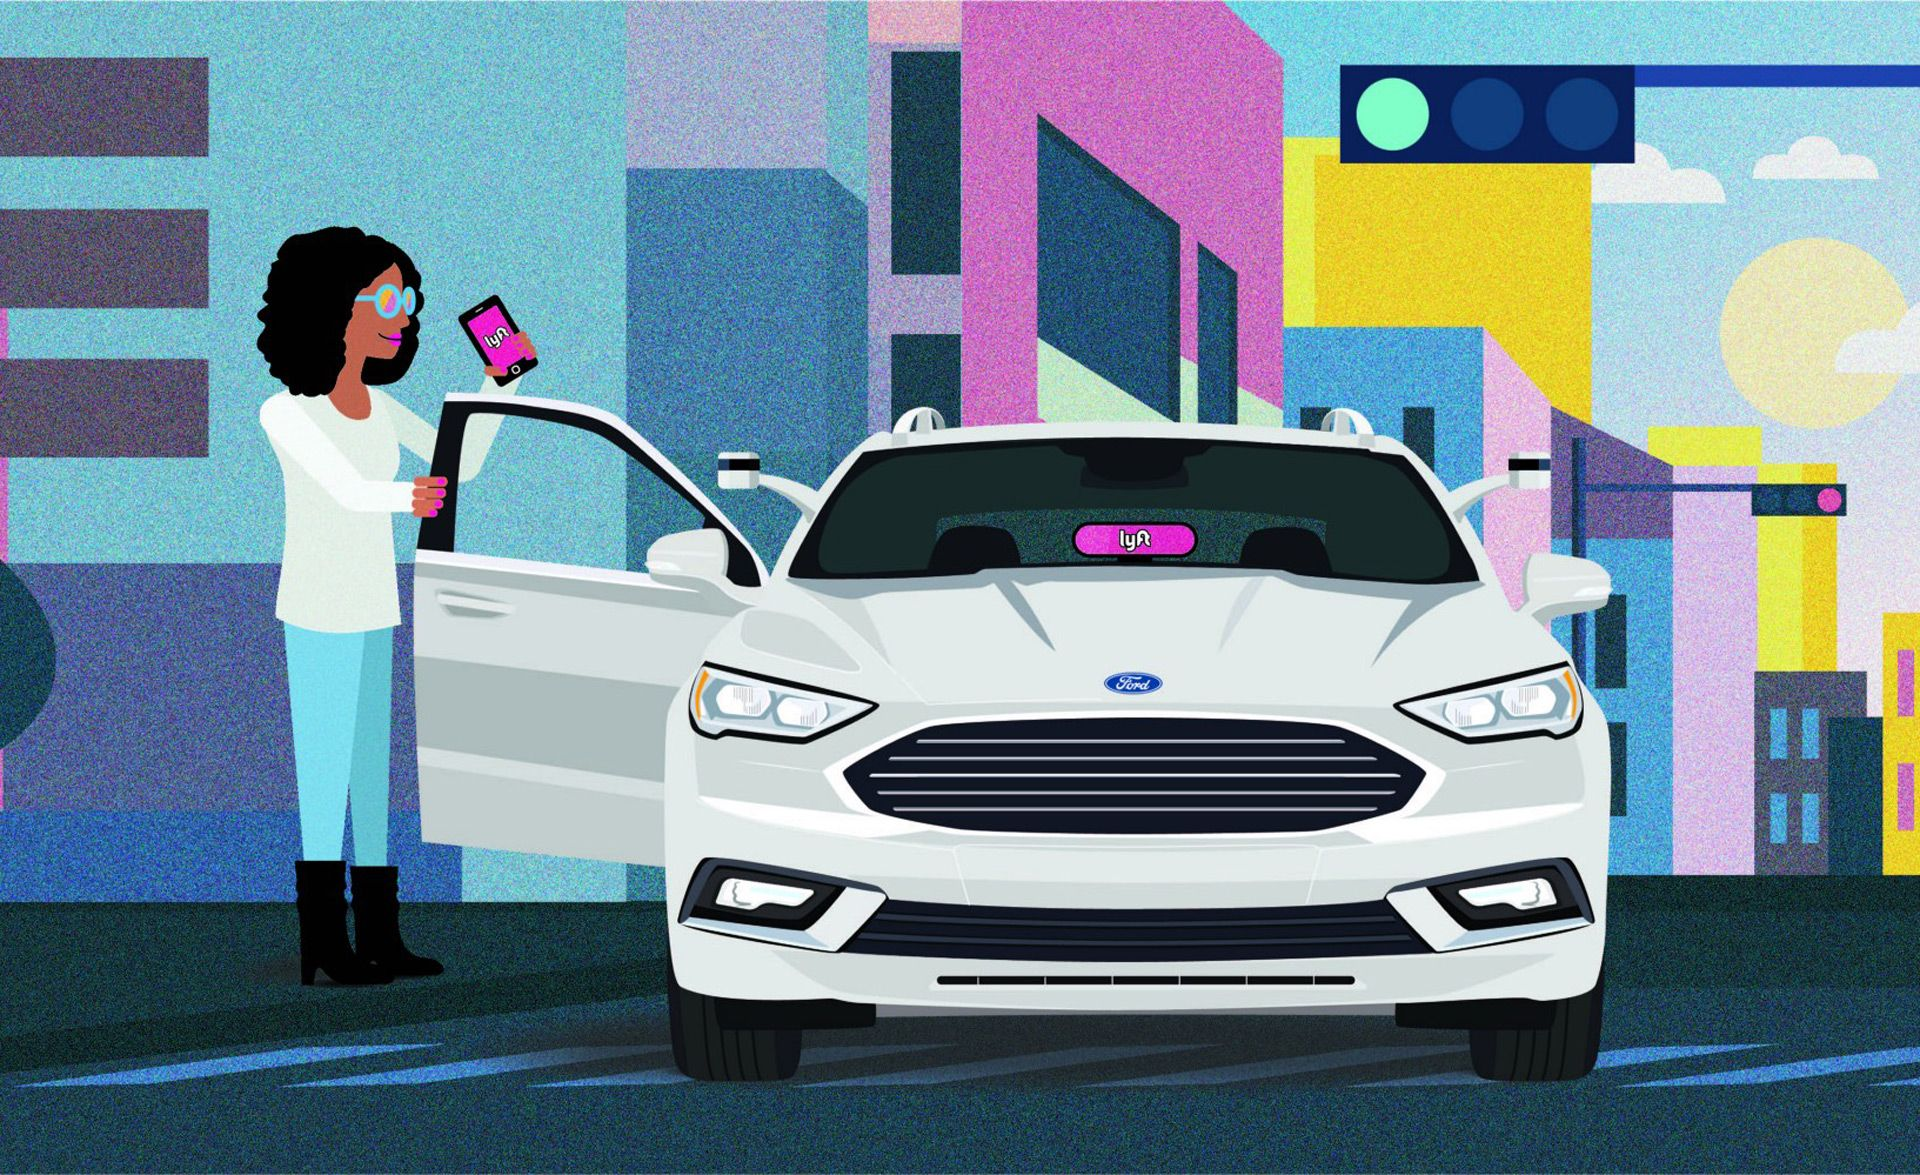 Lyft expands monthly ridehail subscription service